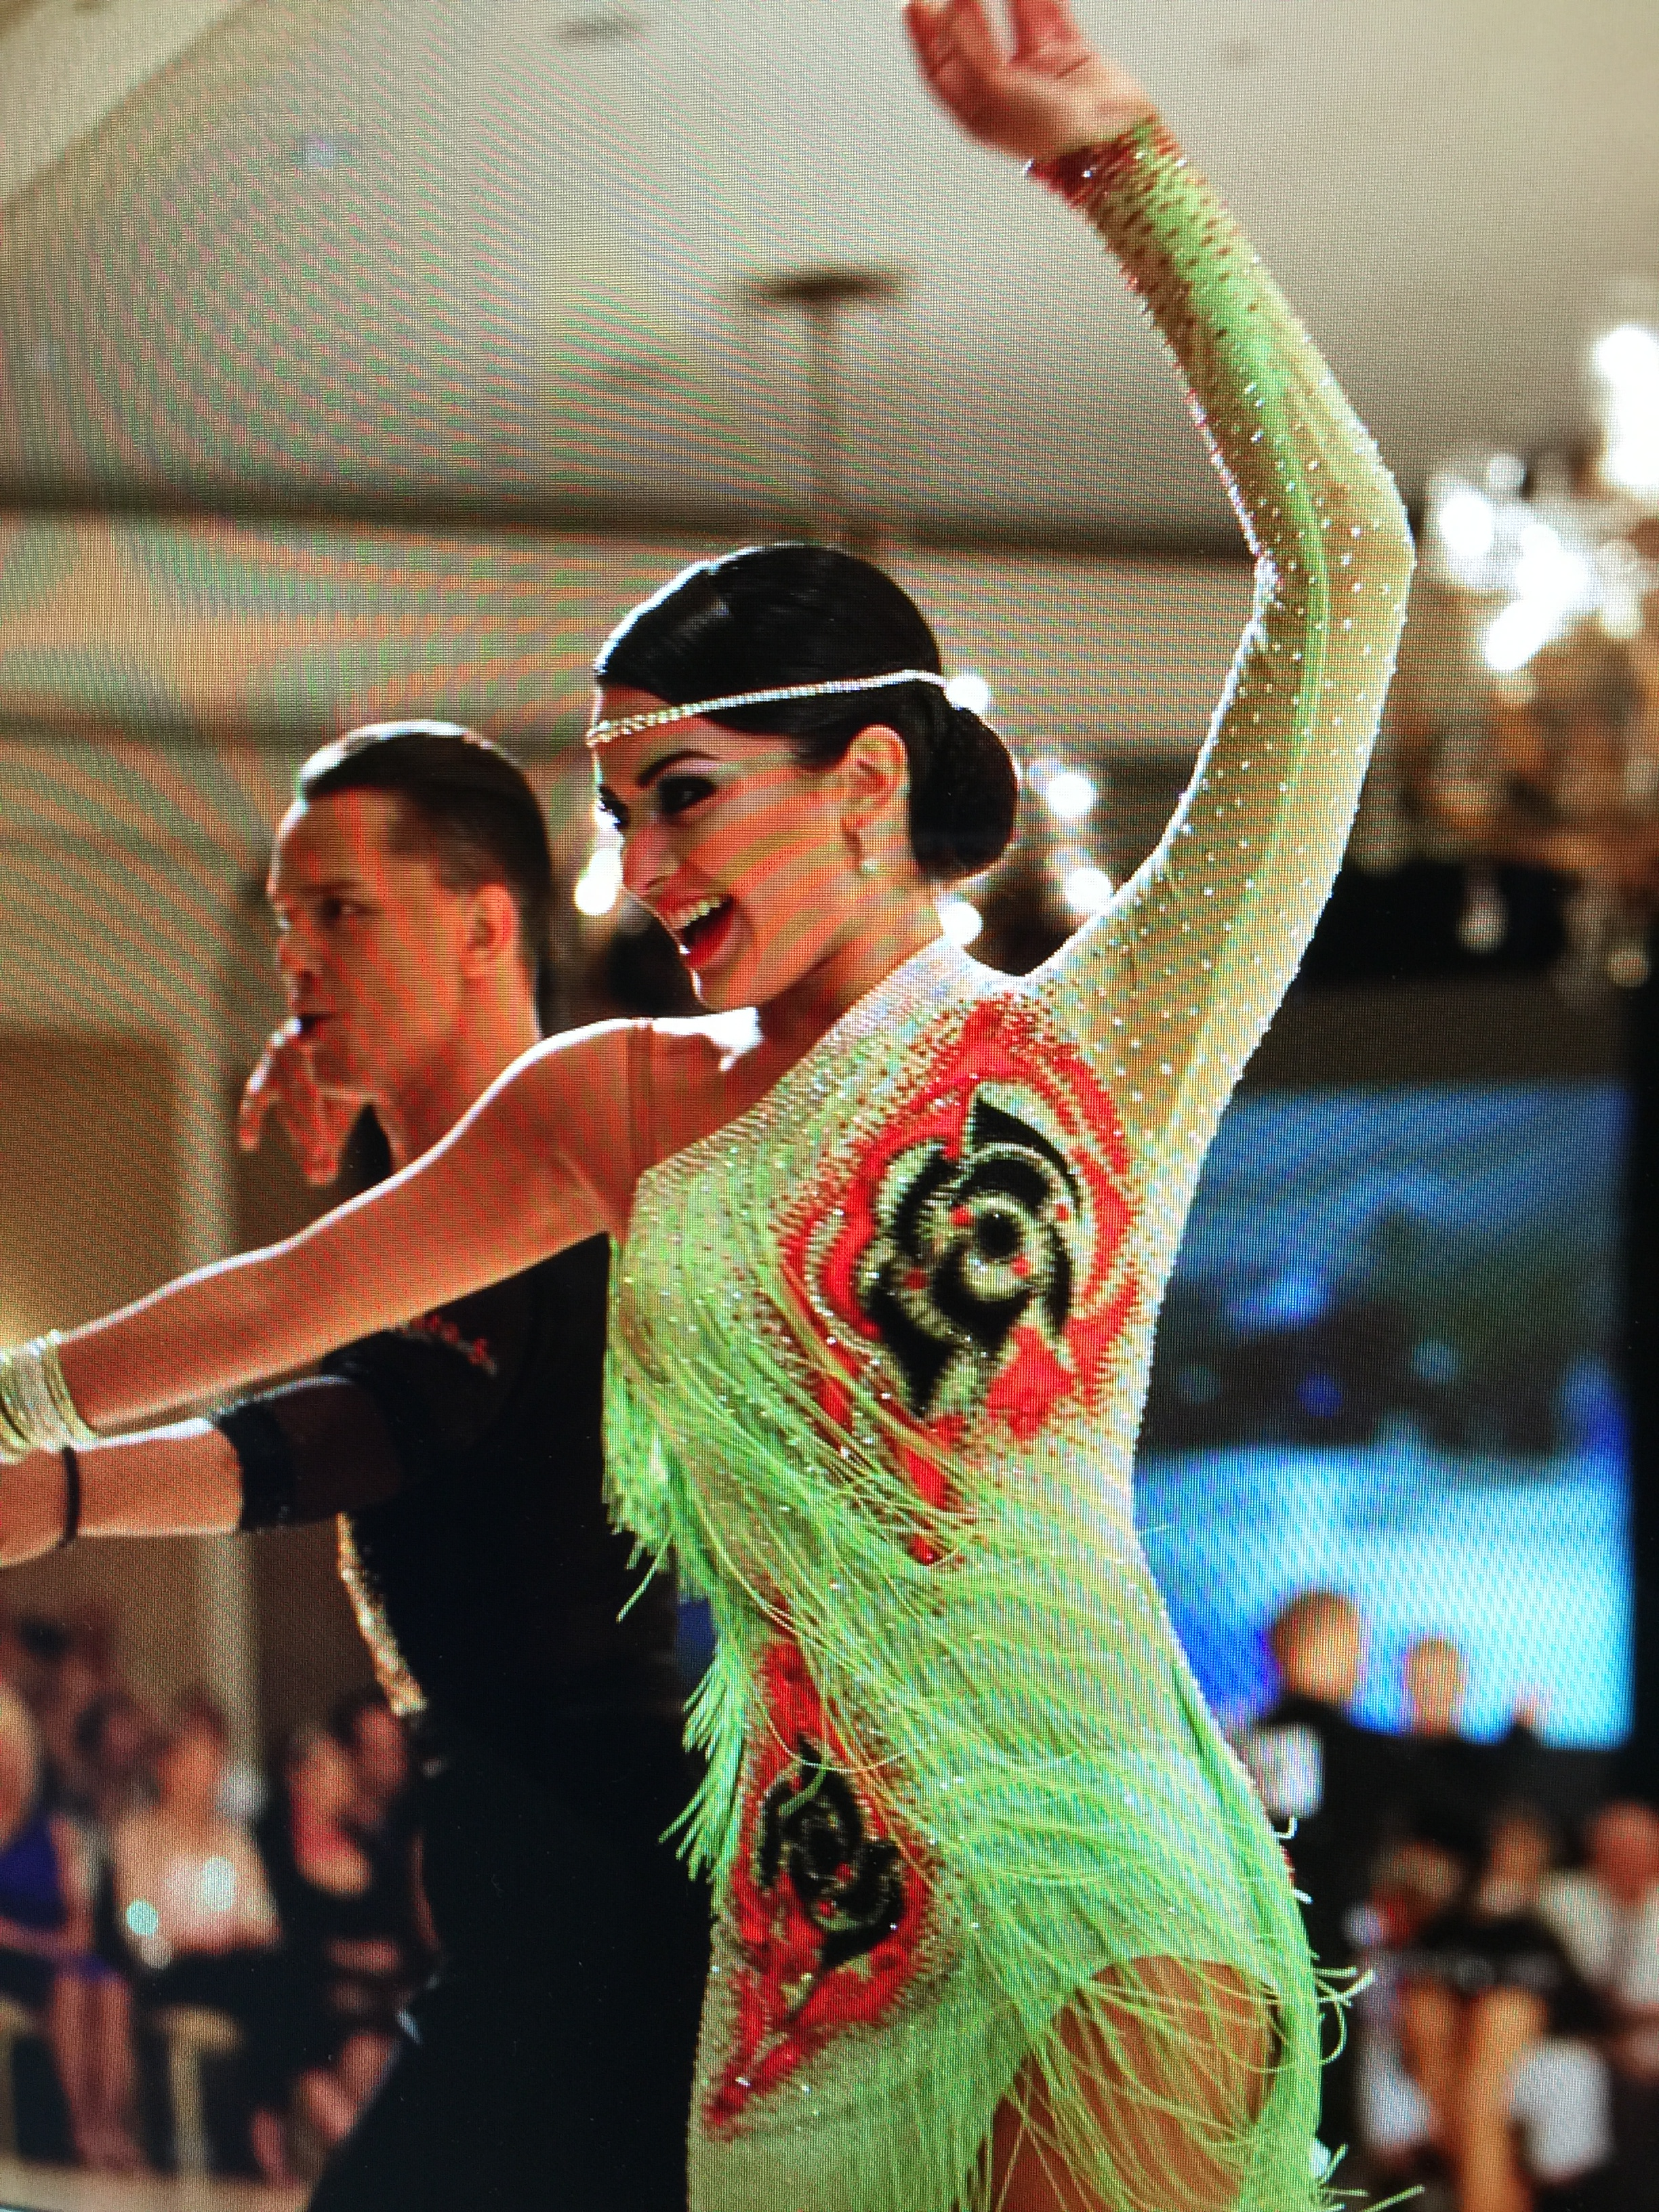 Ashley Sanchez at South Eastern States DanceSport Championships